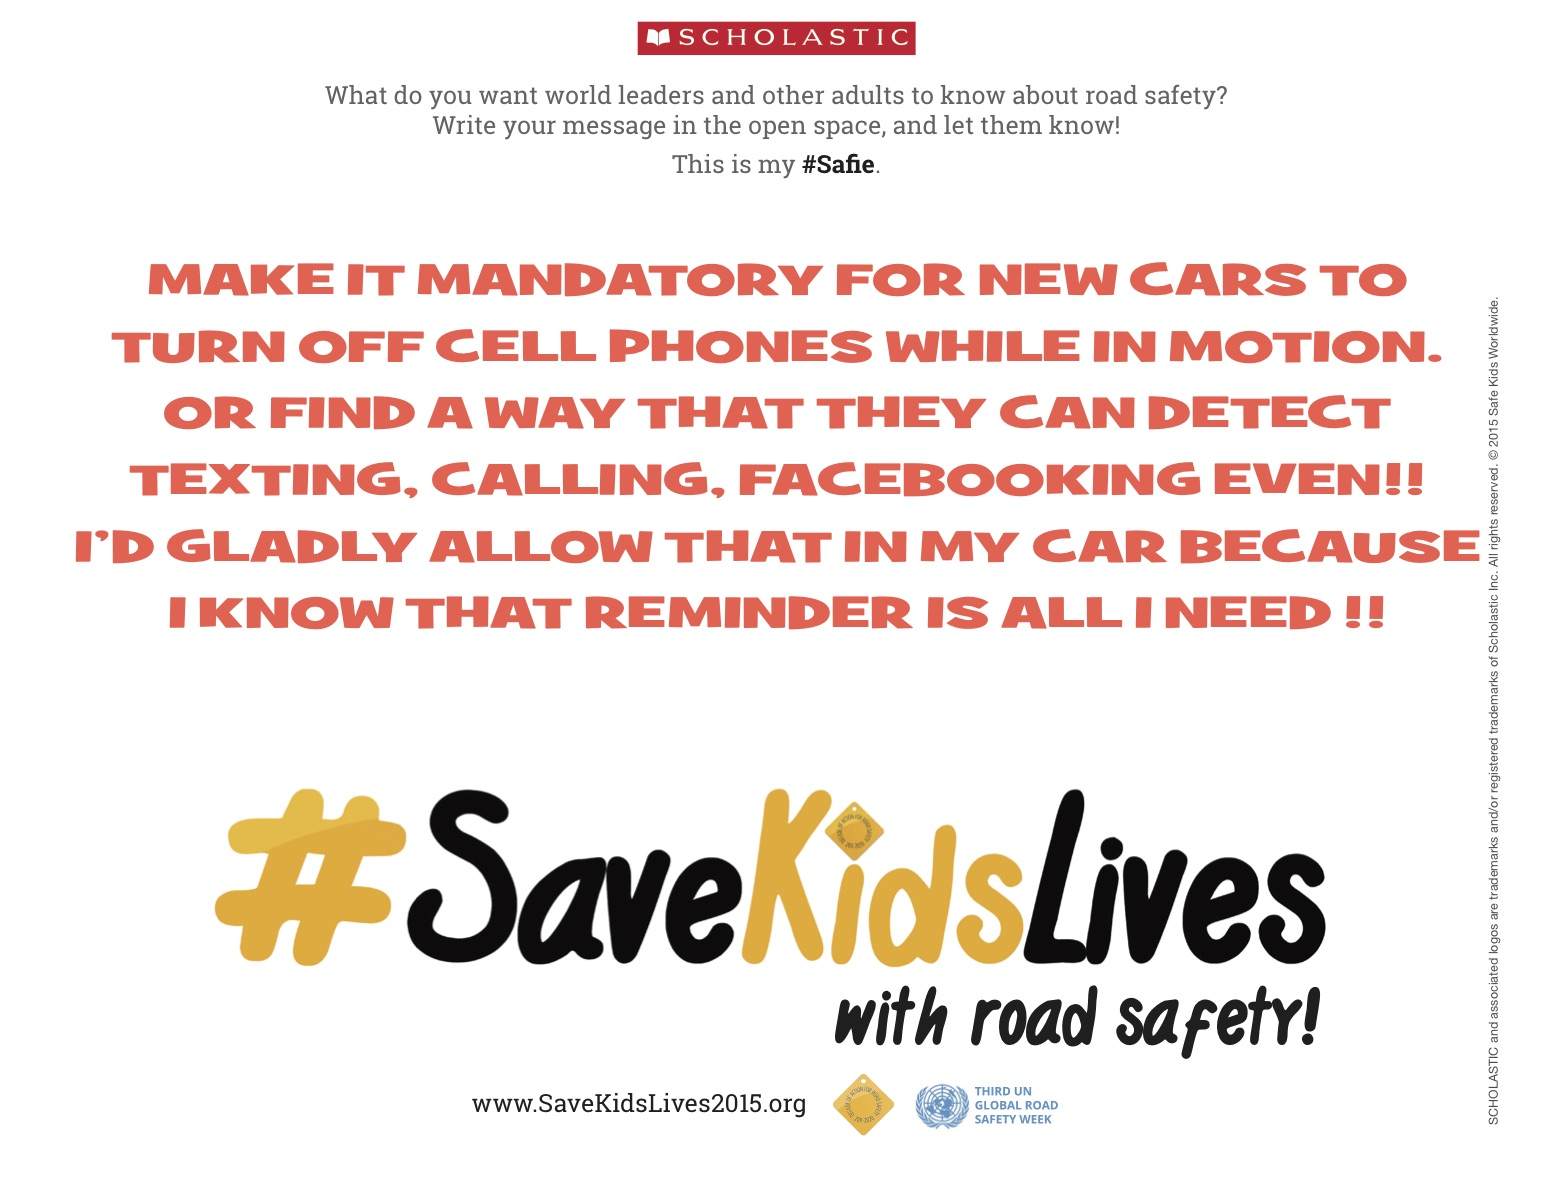 SAVES-KIDS-LIVES-CAMPAIGN